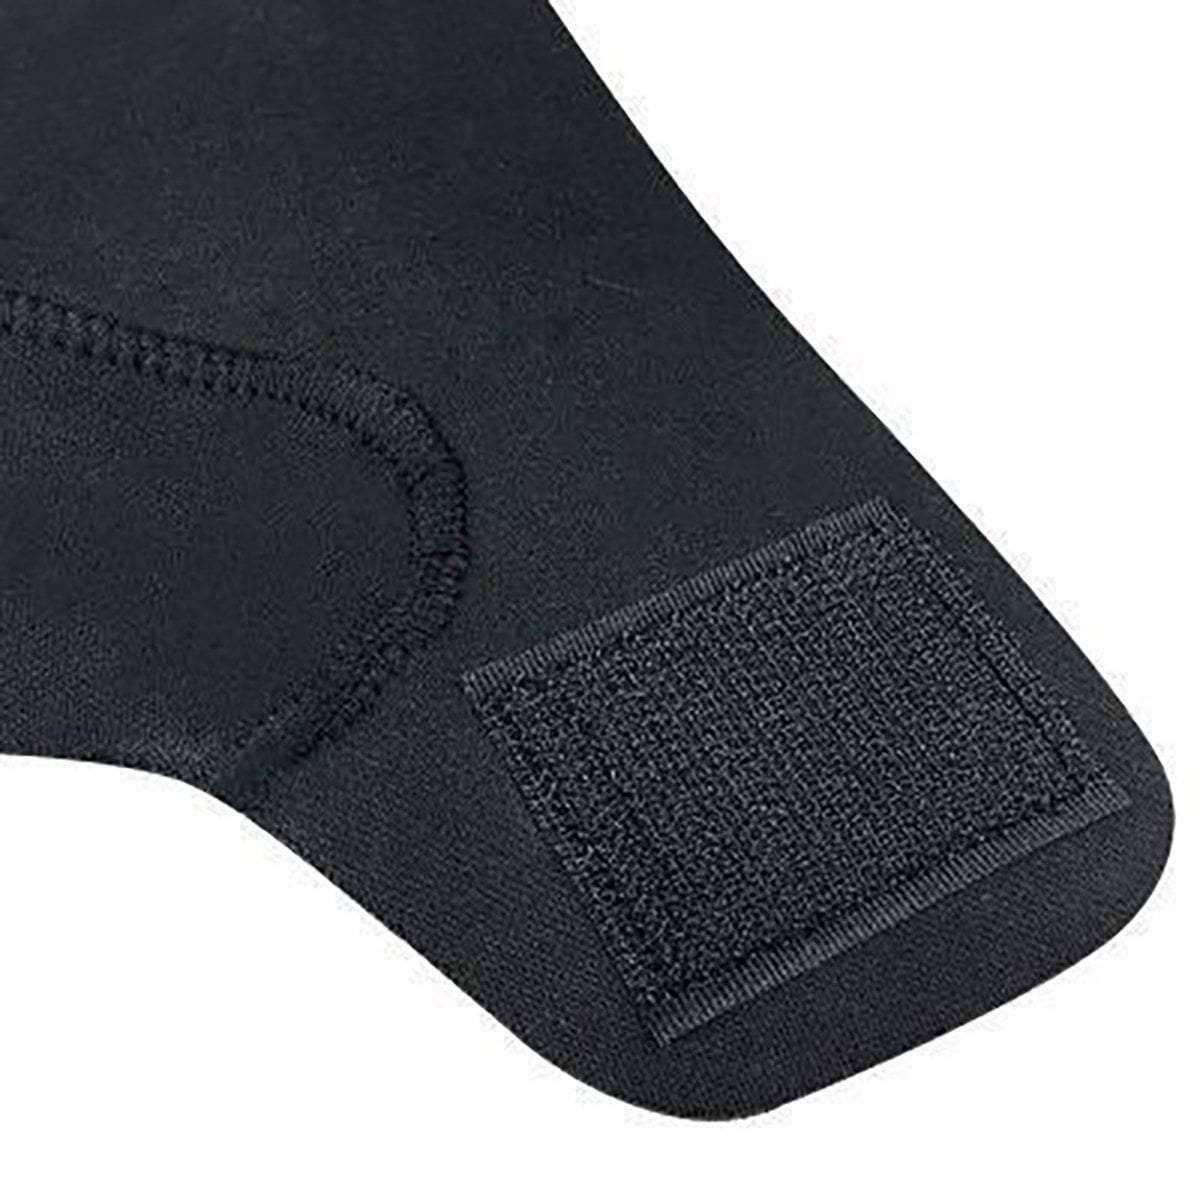 Adjustable Elastic Ankle Sleeve - - health & fitness - Deal Builder